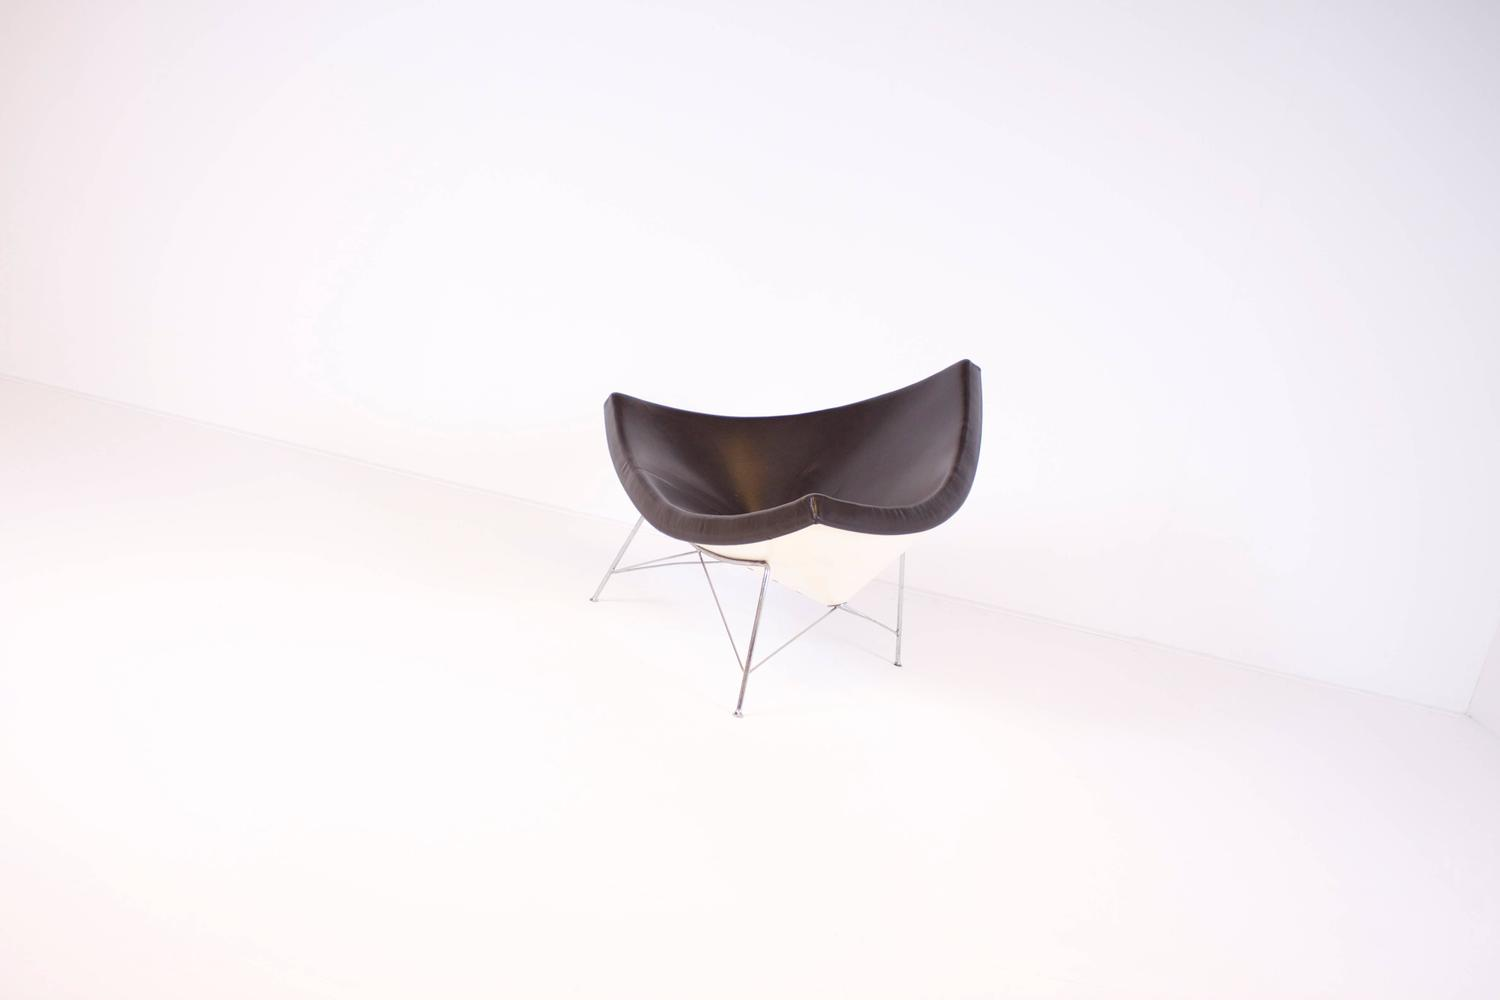 vitra coconut chair by george nelson in brown leather for sale at 1stdibs. Black Bedroom Furniture Sets. Home Design Ideas